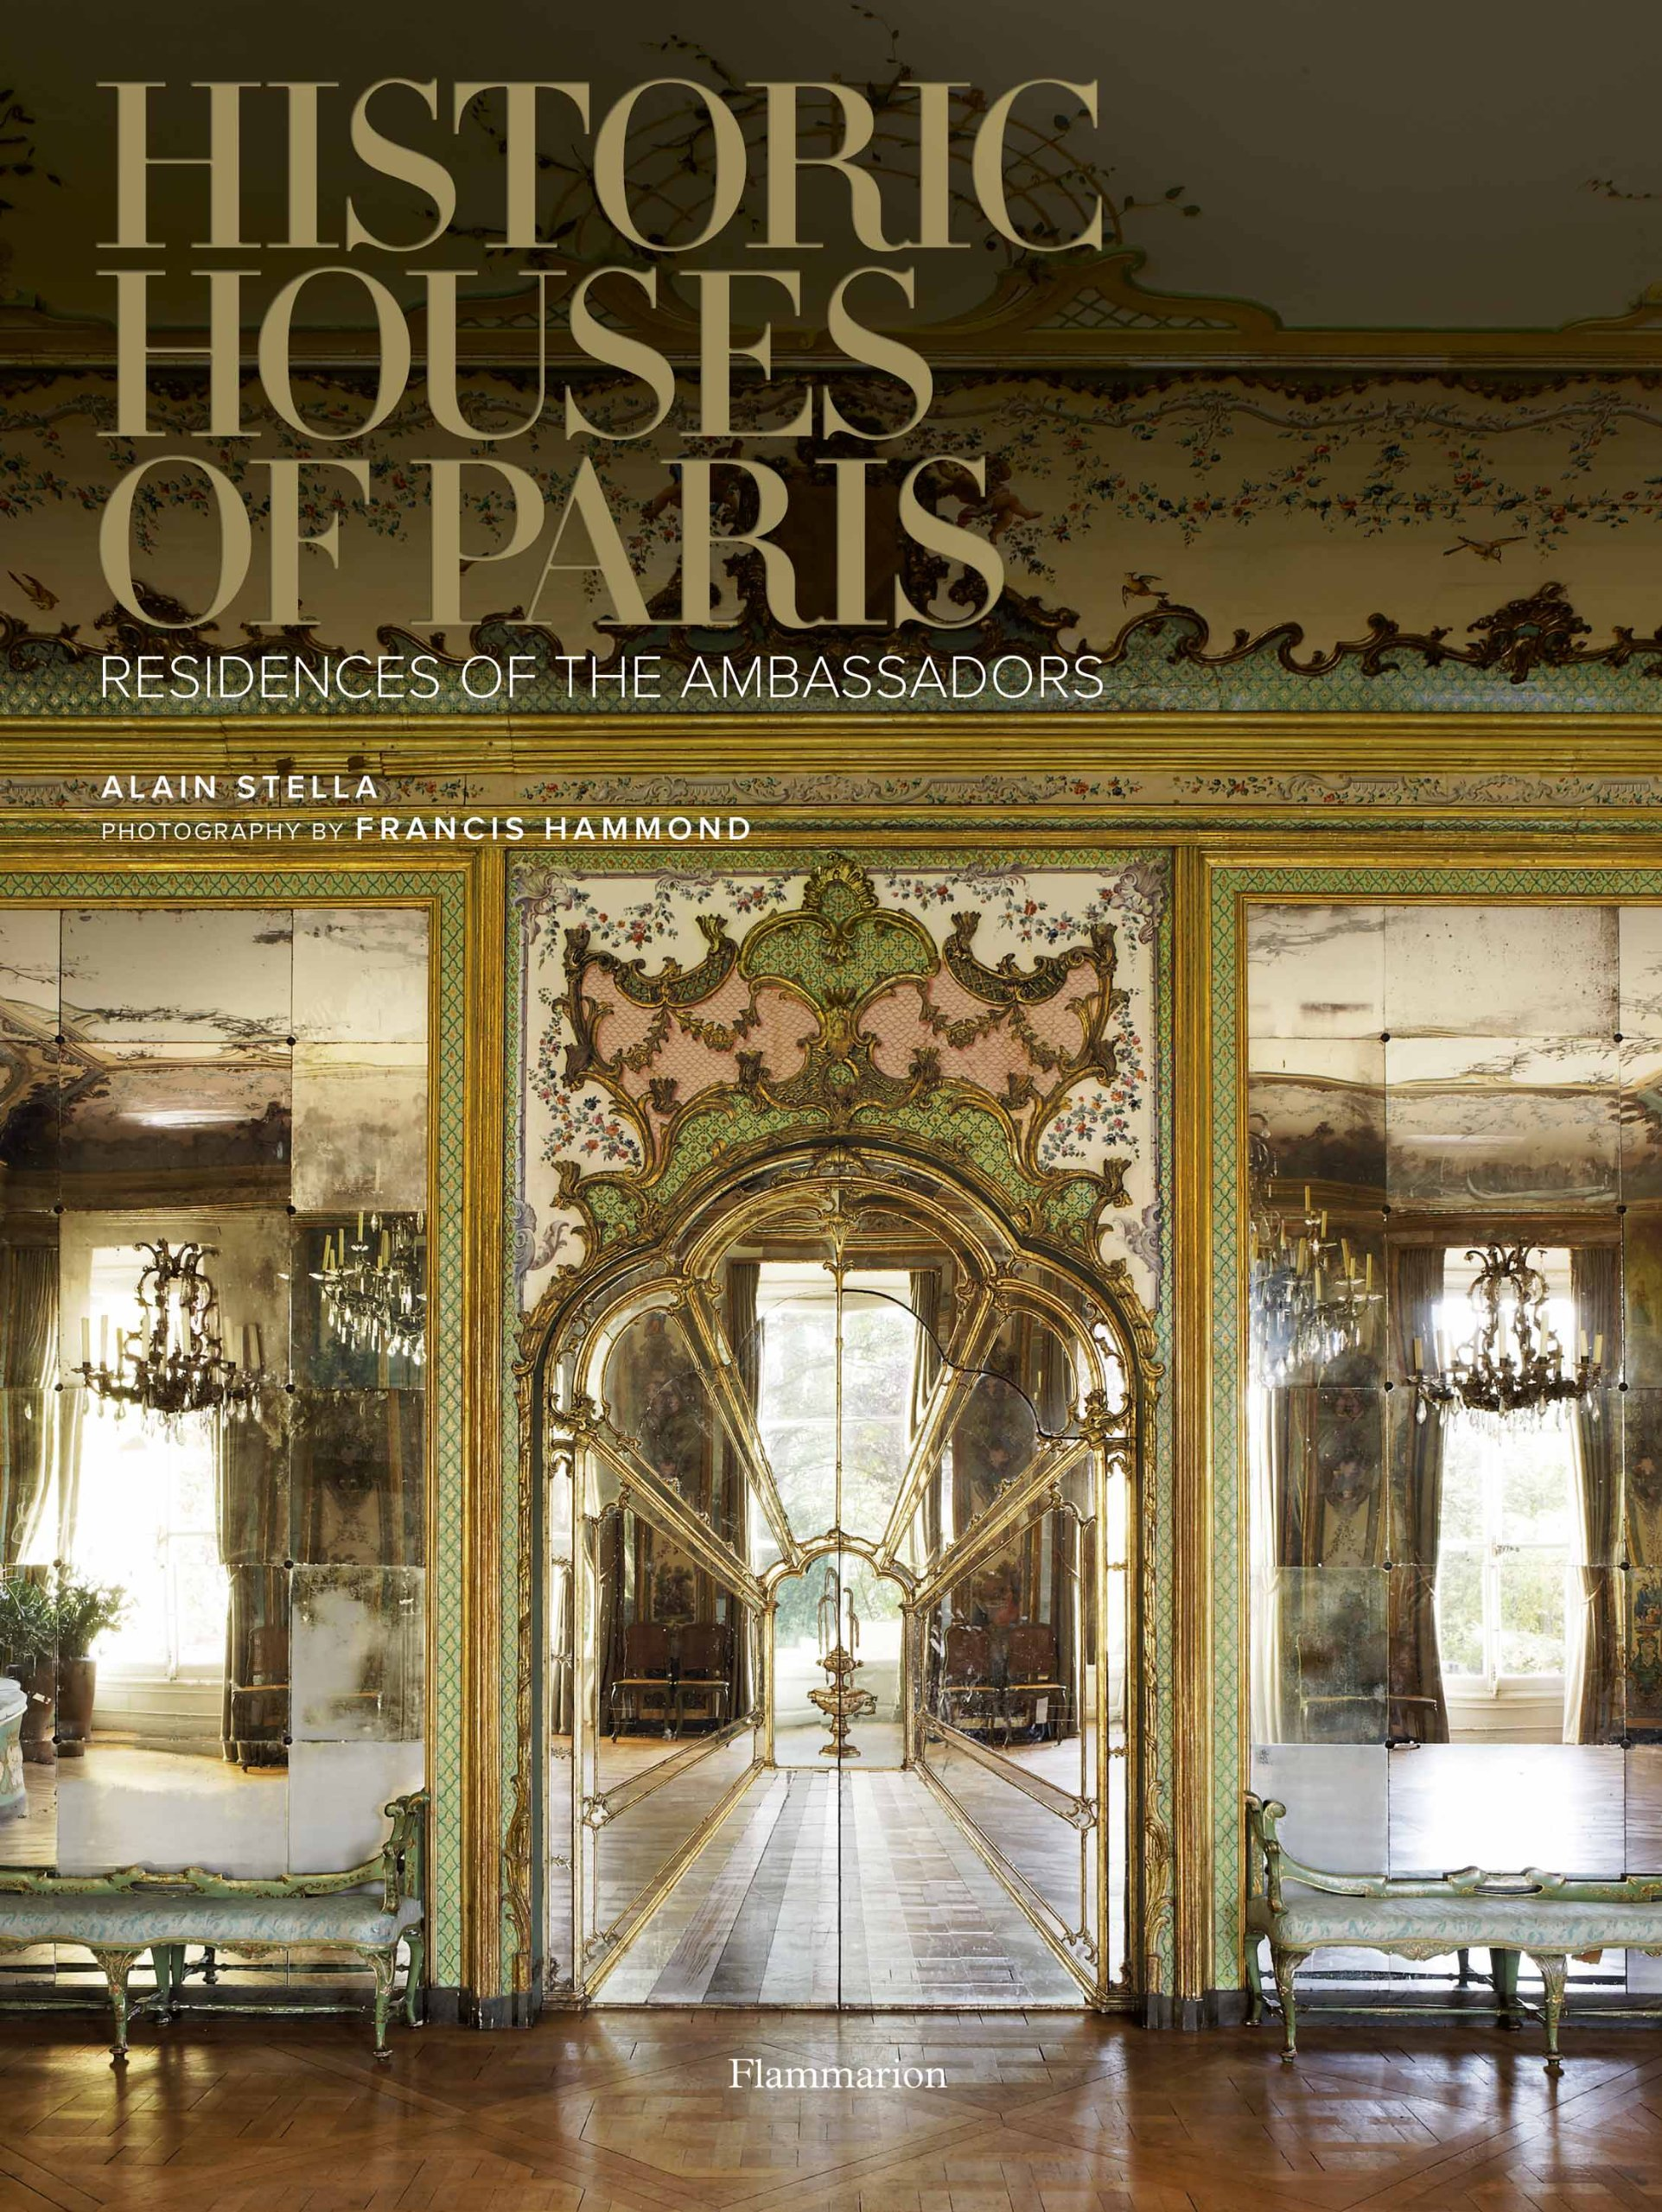 Historic Houses of Paris: Residences of the Ambassadors by Flammarion